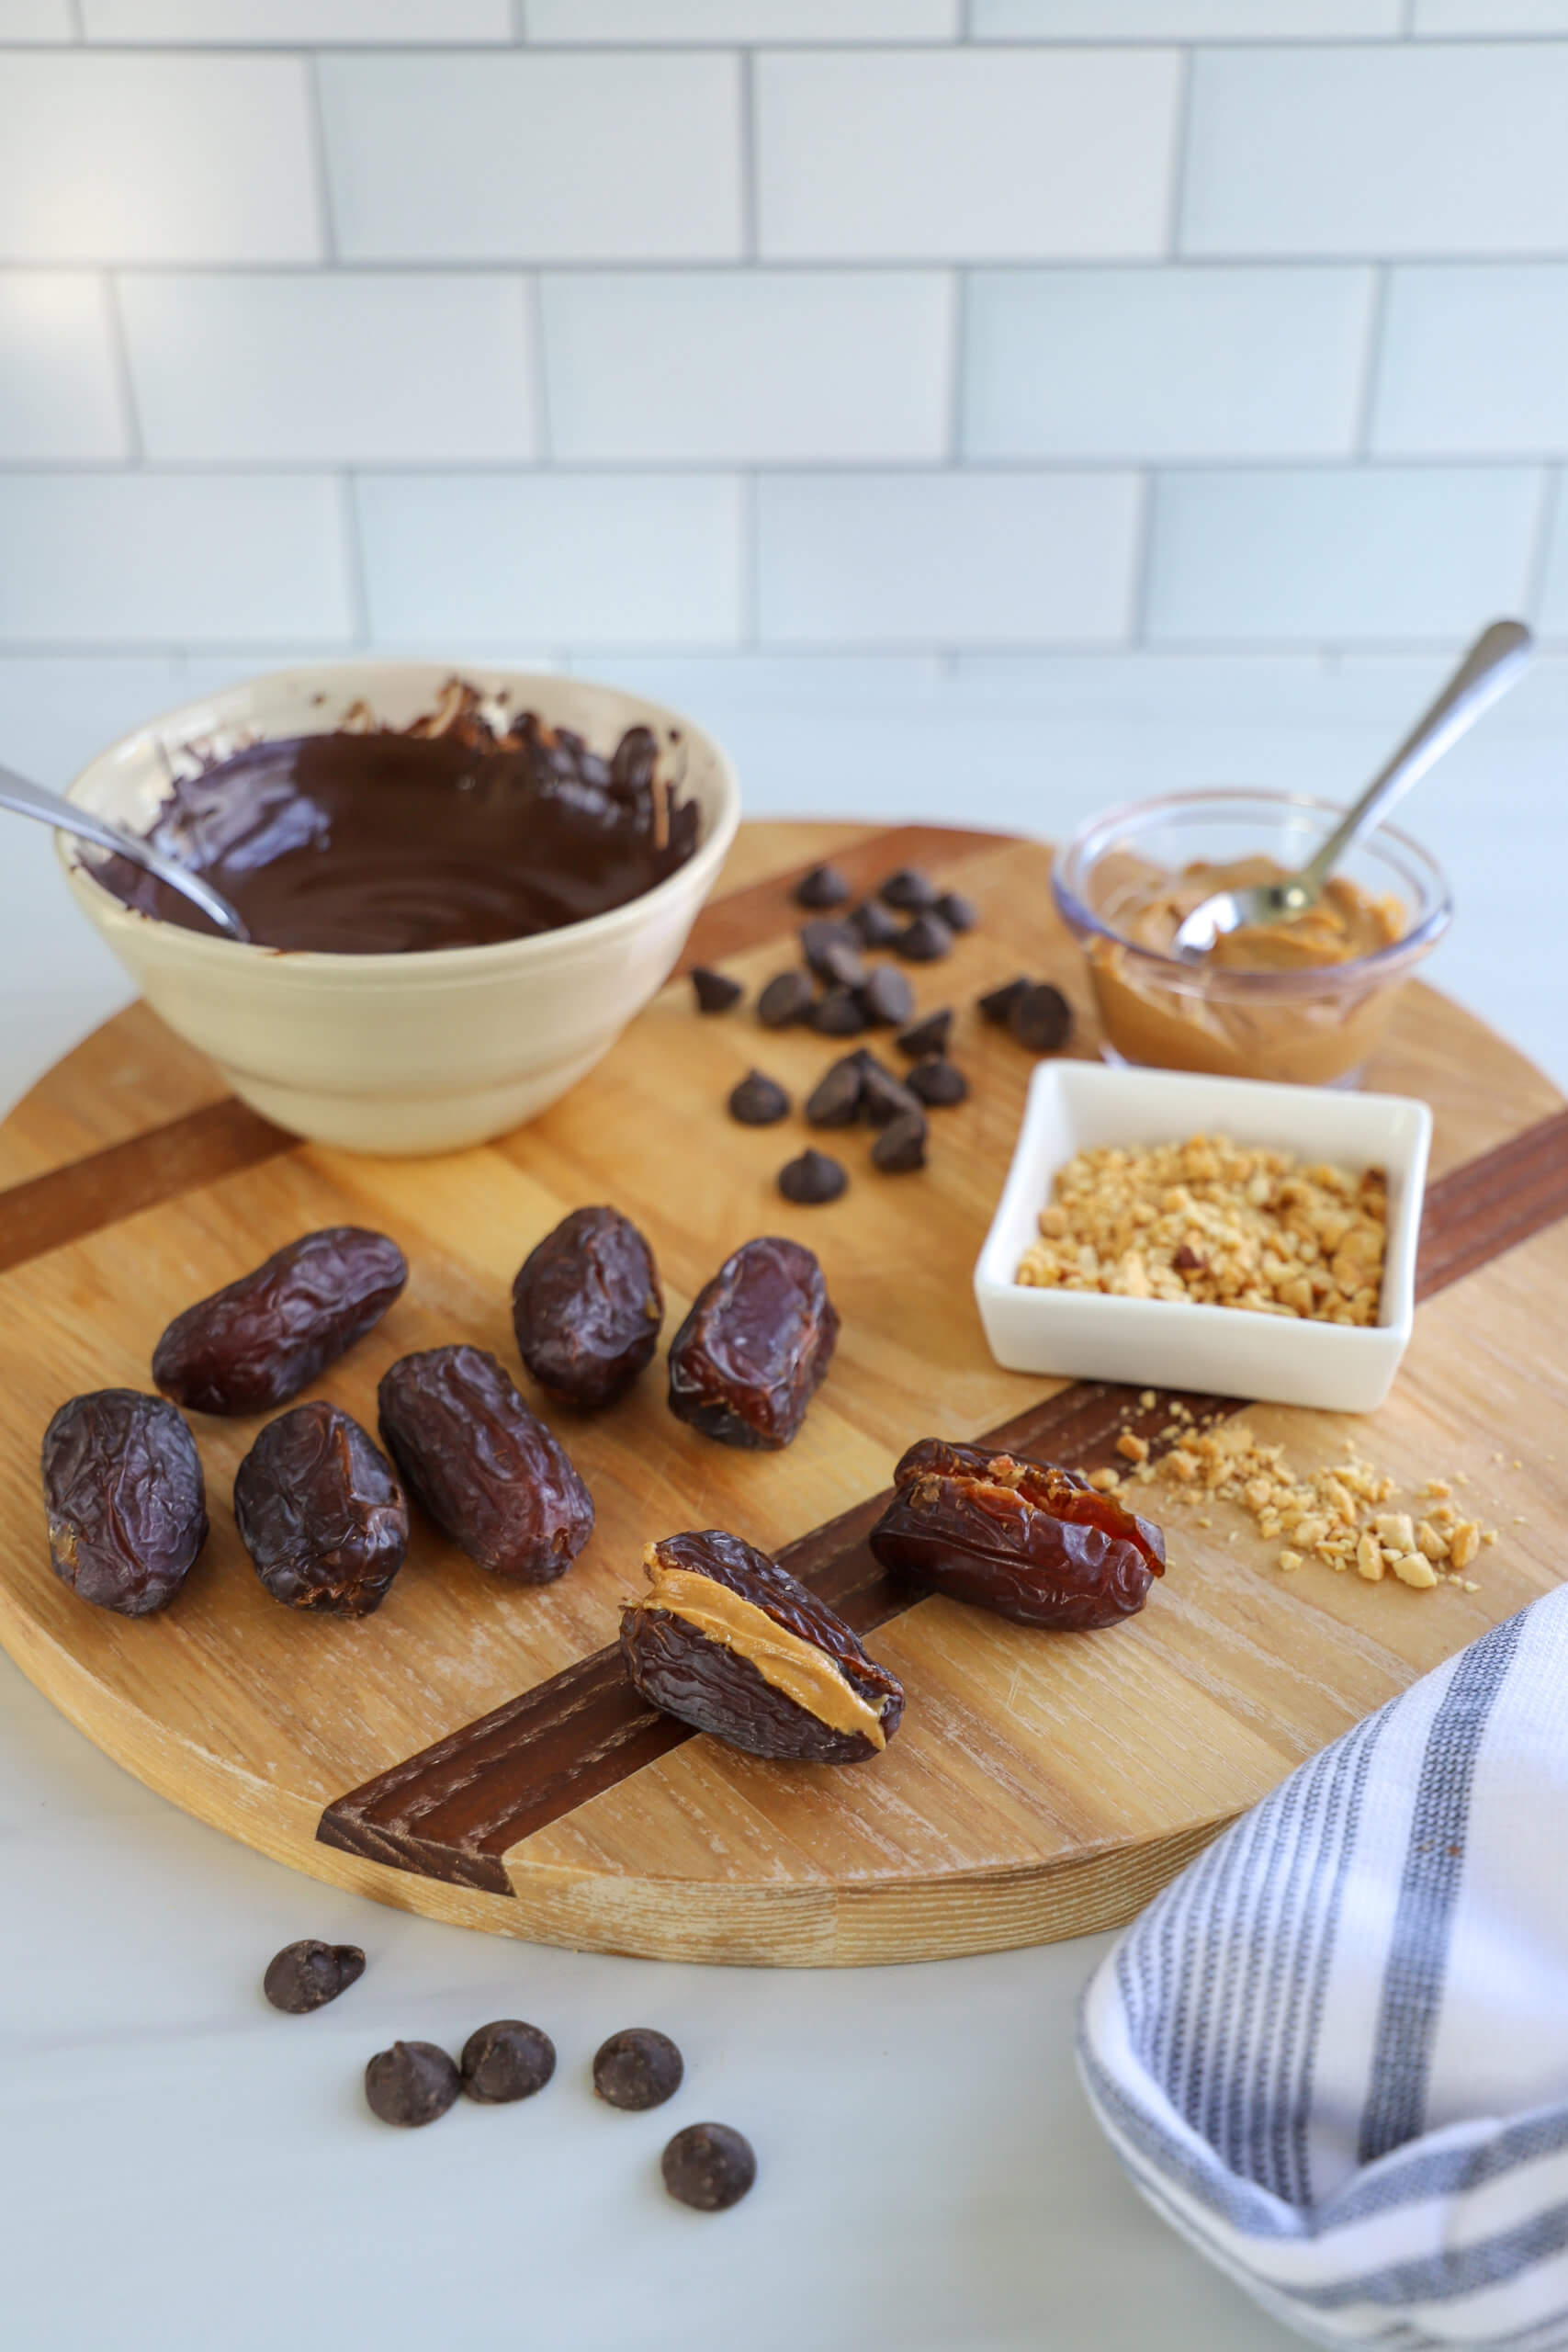 Ingredients for Chocolate-Dipped Peanut Butter Stuffed Dates